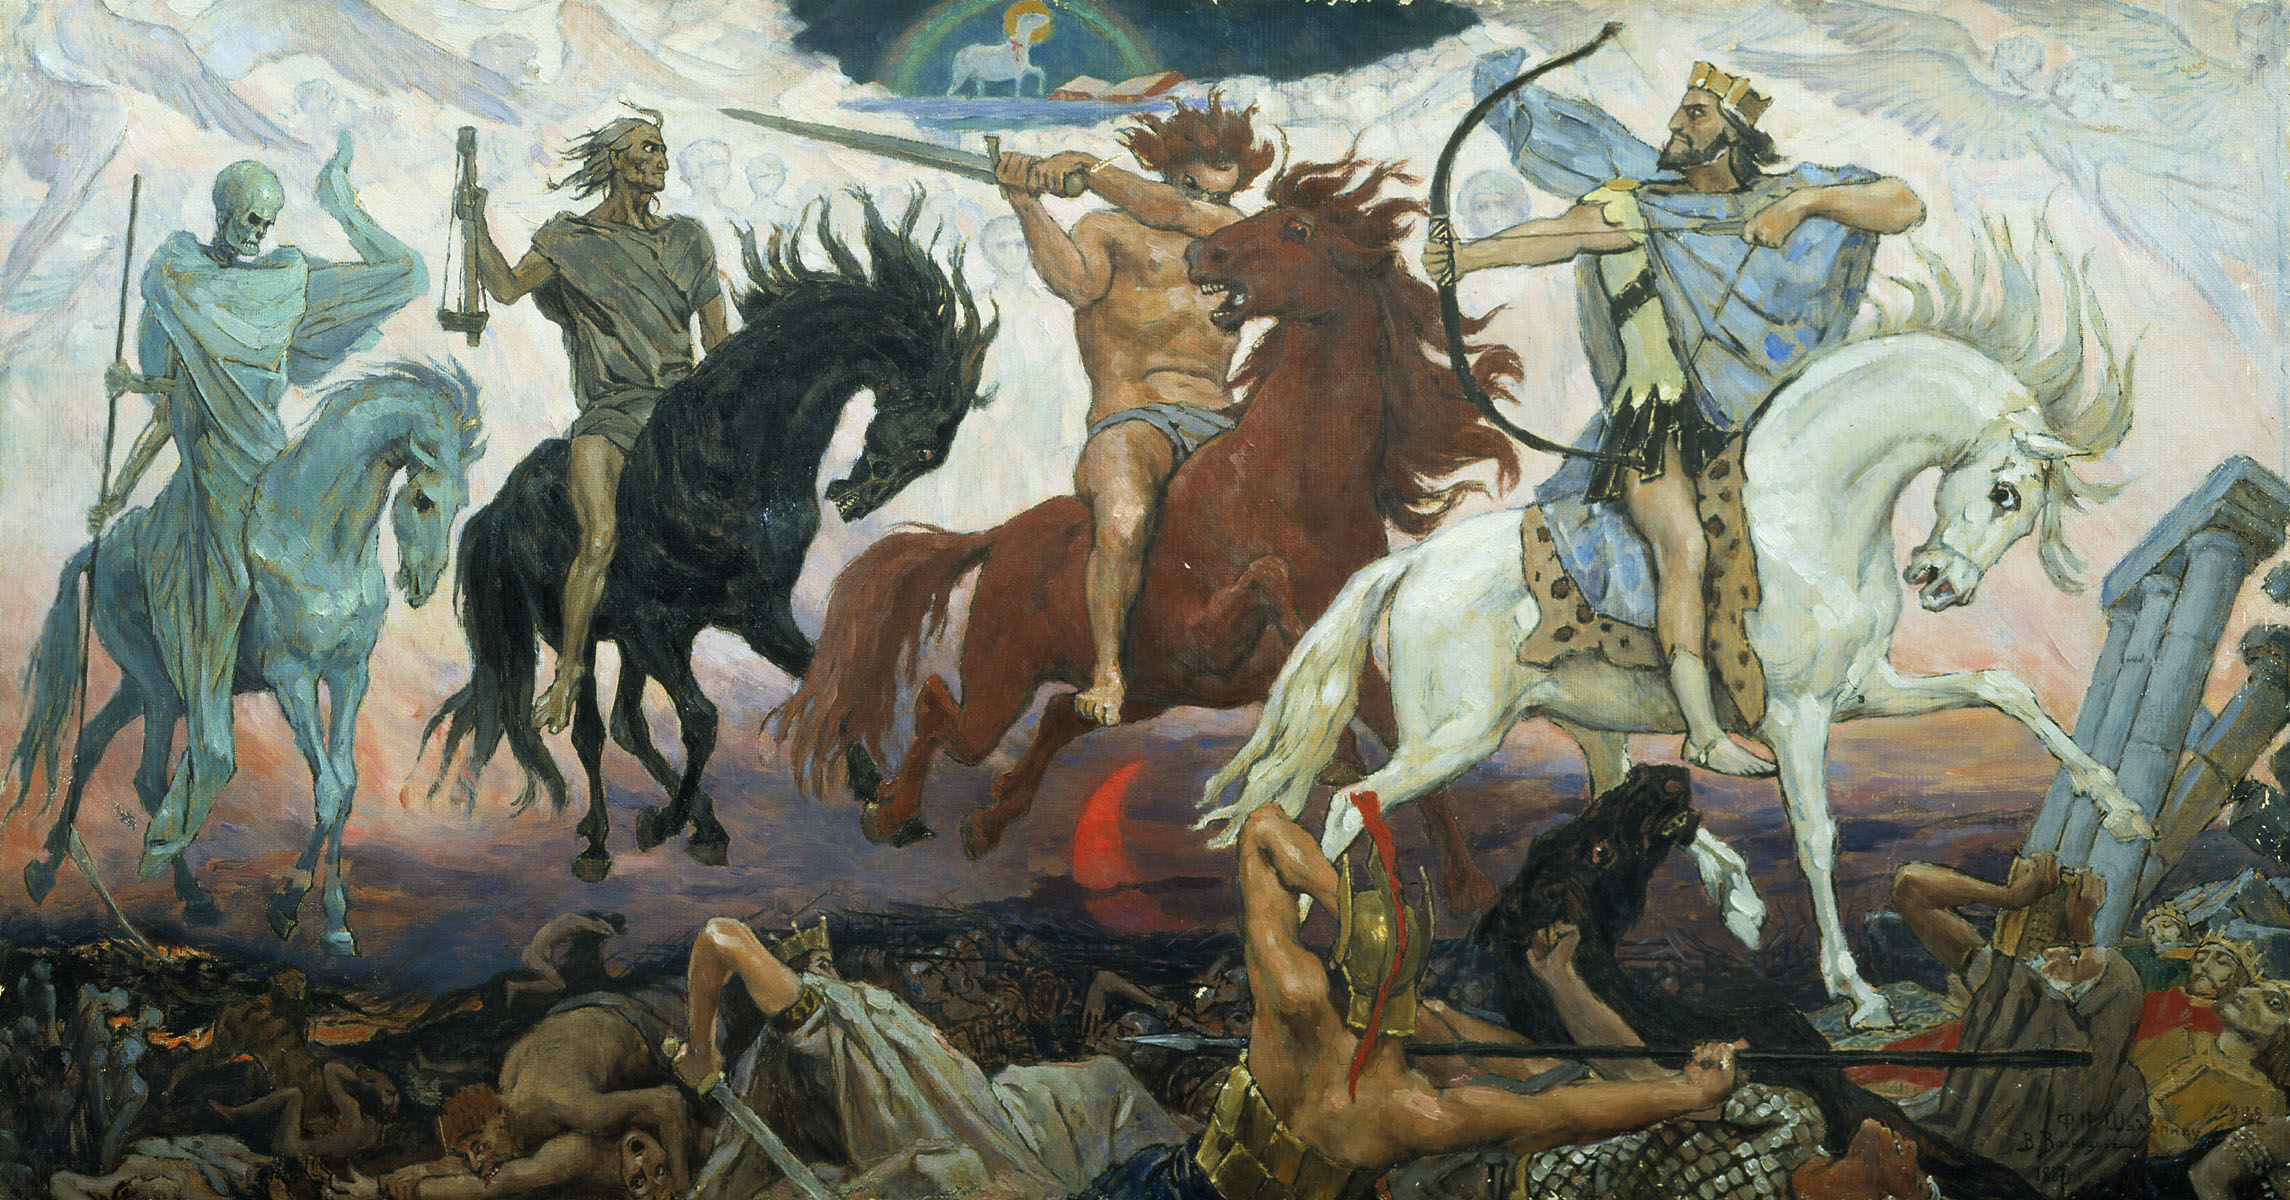 Apocalypse by Vasnetsov with the four horsemen of Revelation displayed